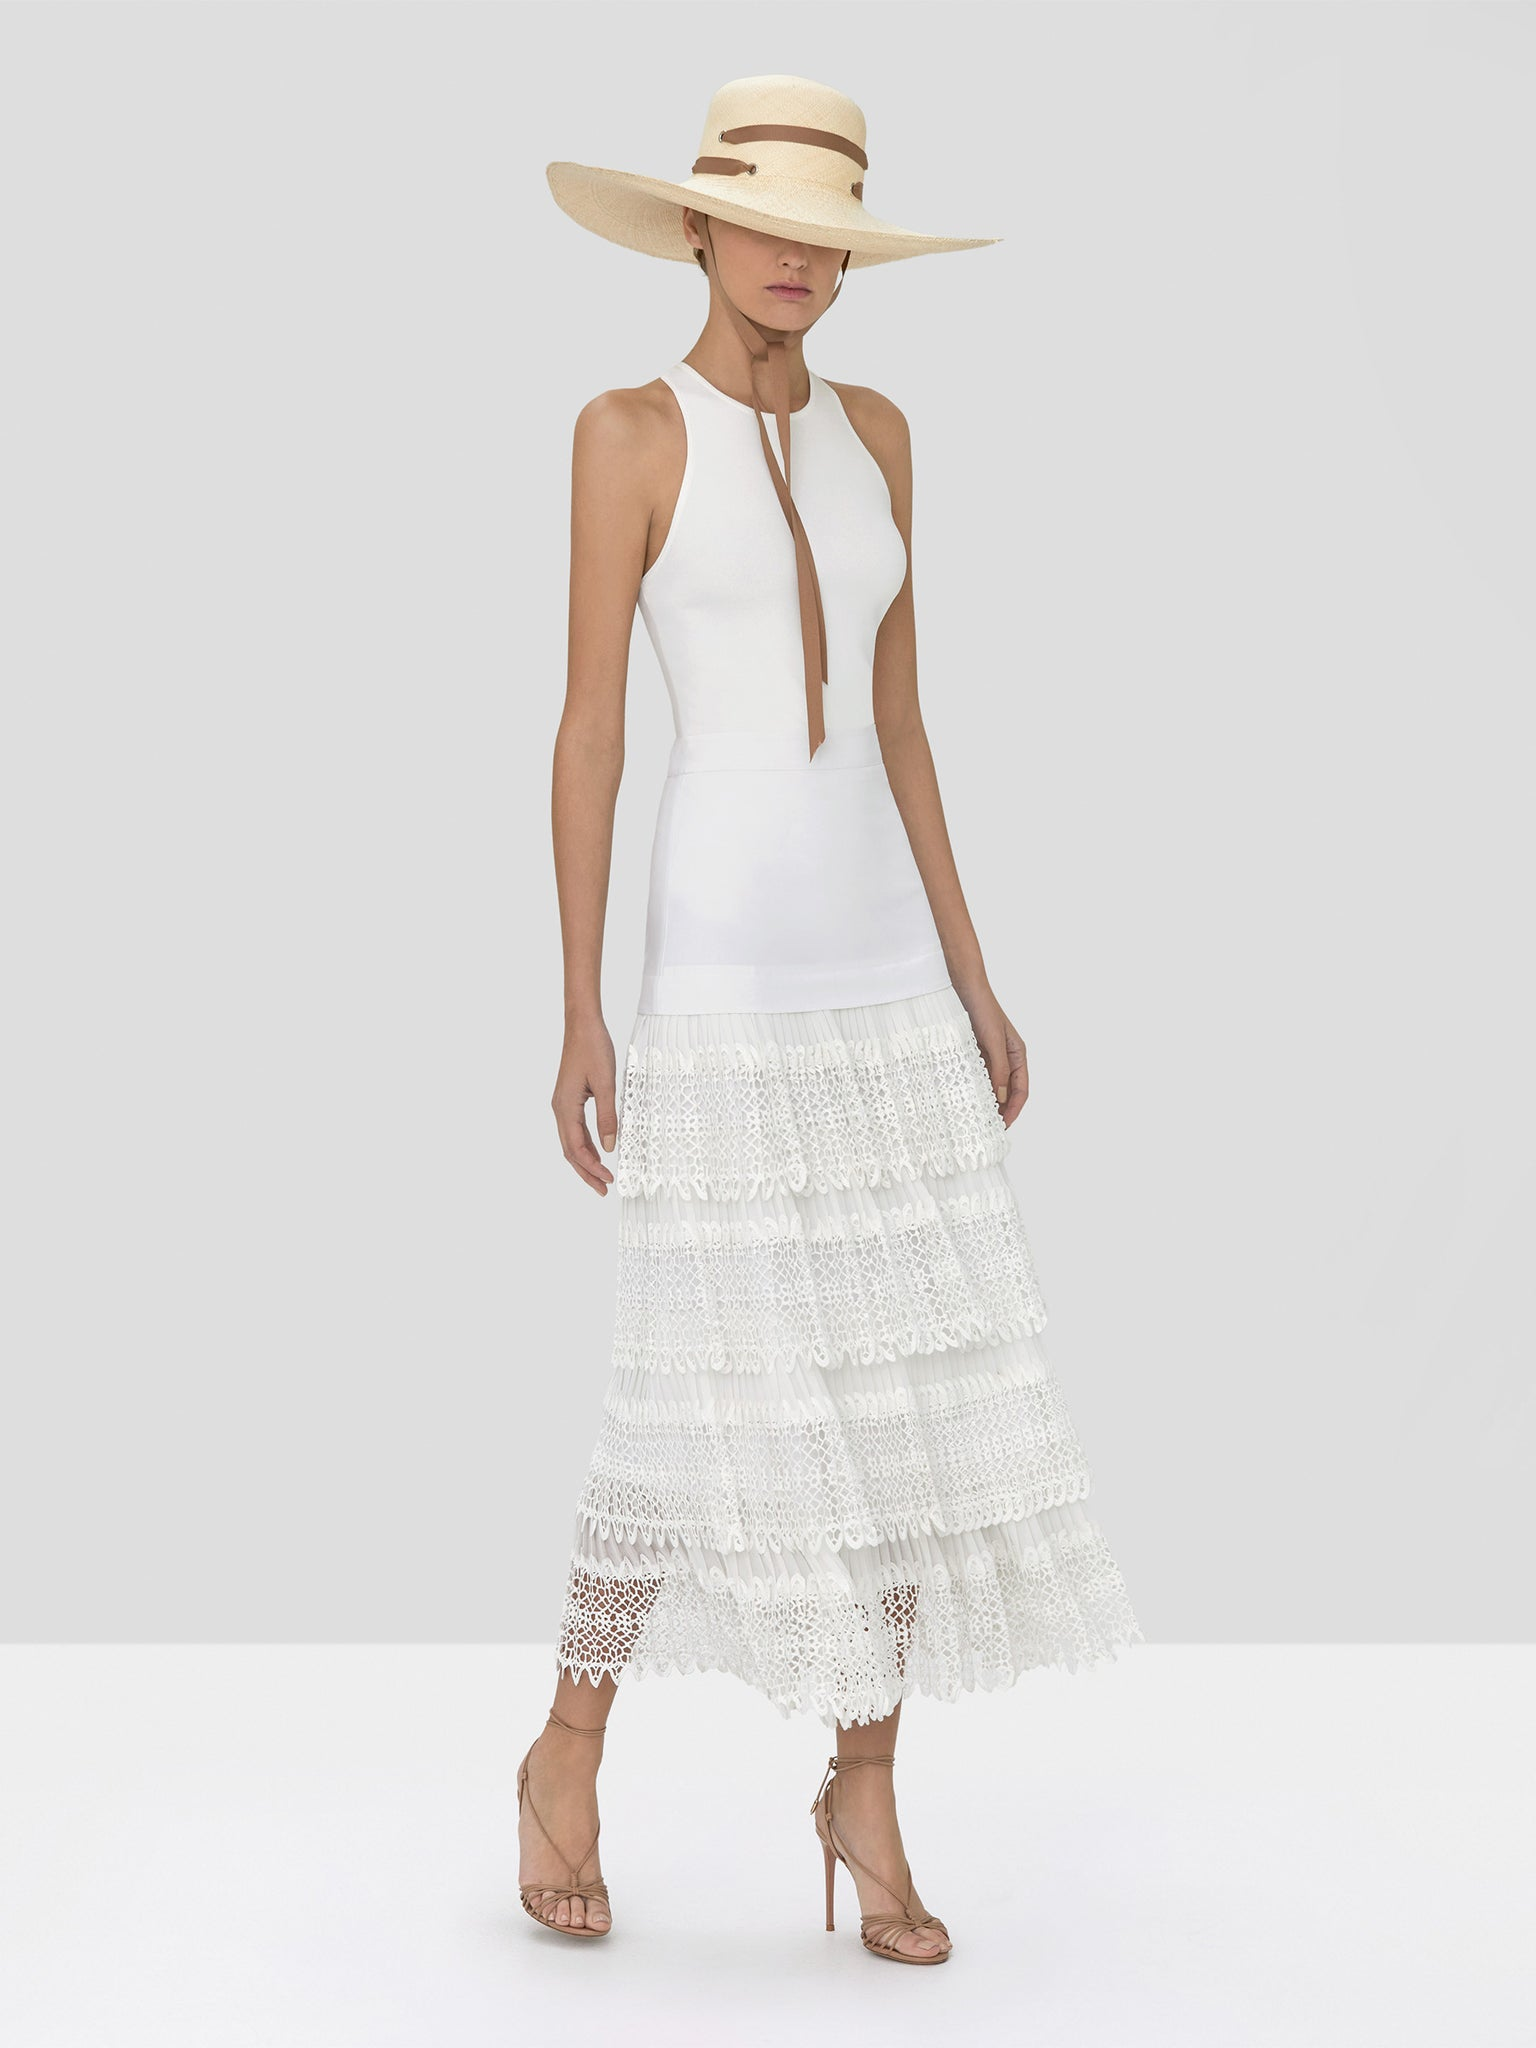 Alexis Zeni Top in White and Helis Skirt in White from Spring Summer 2020